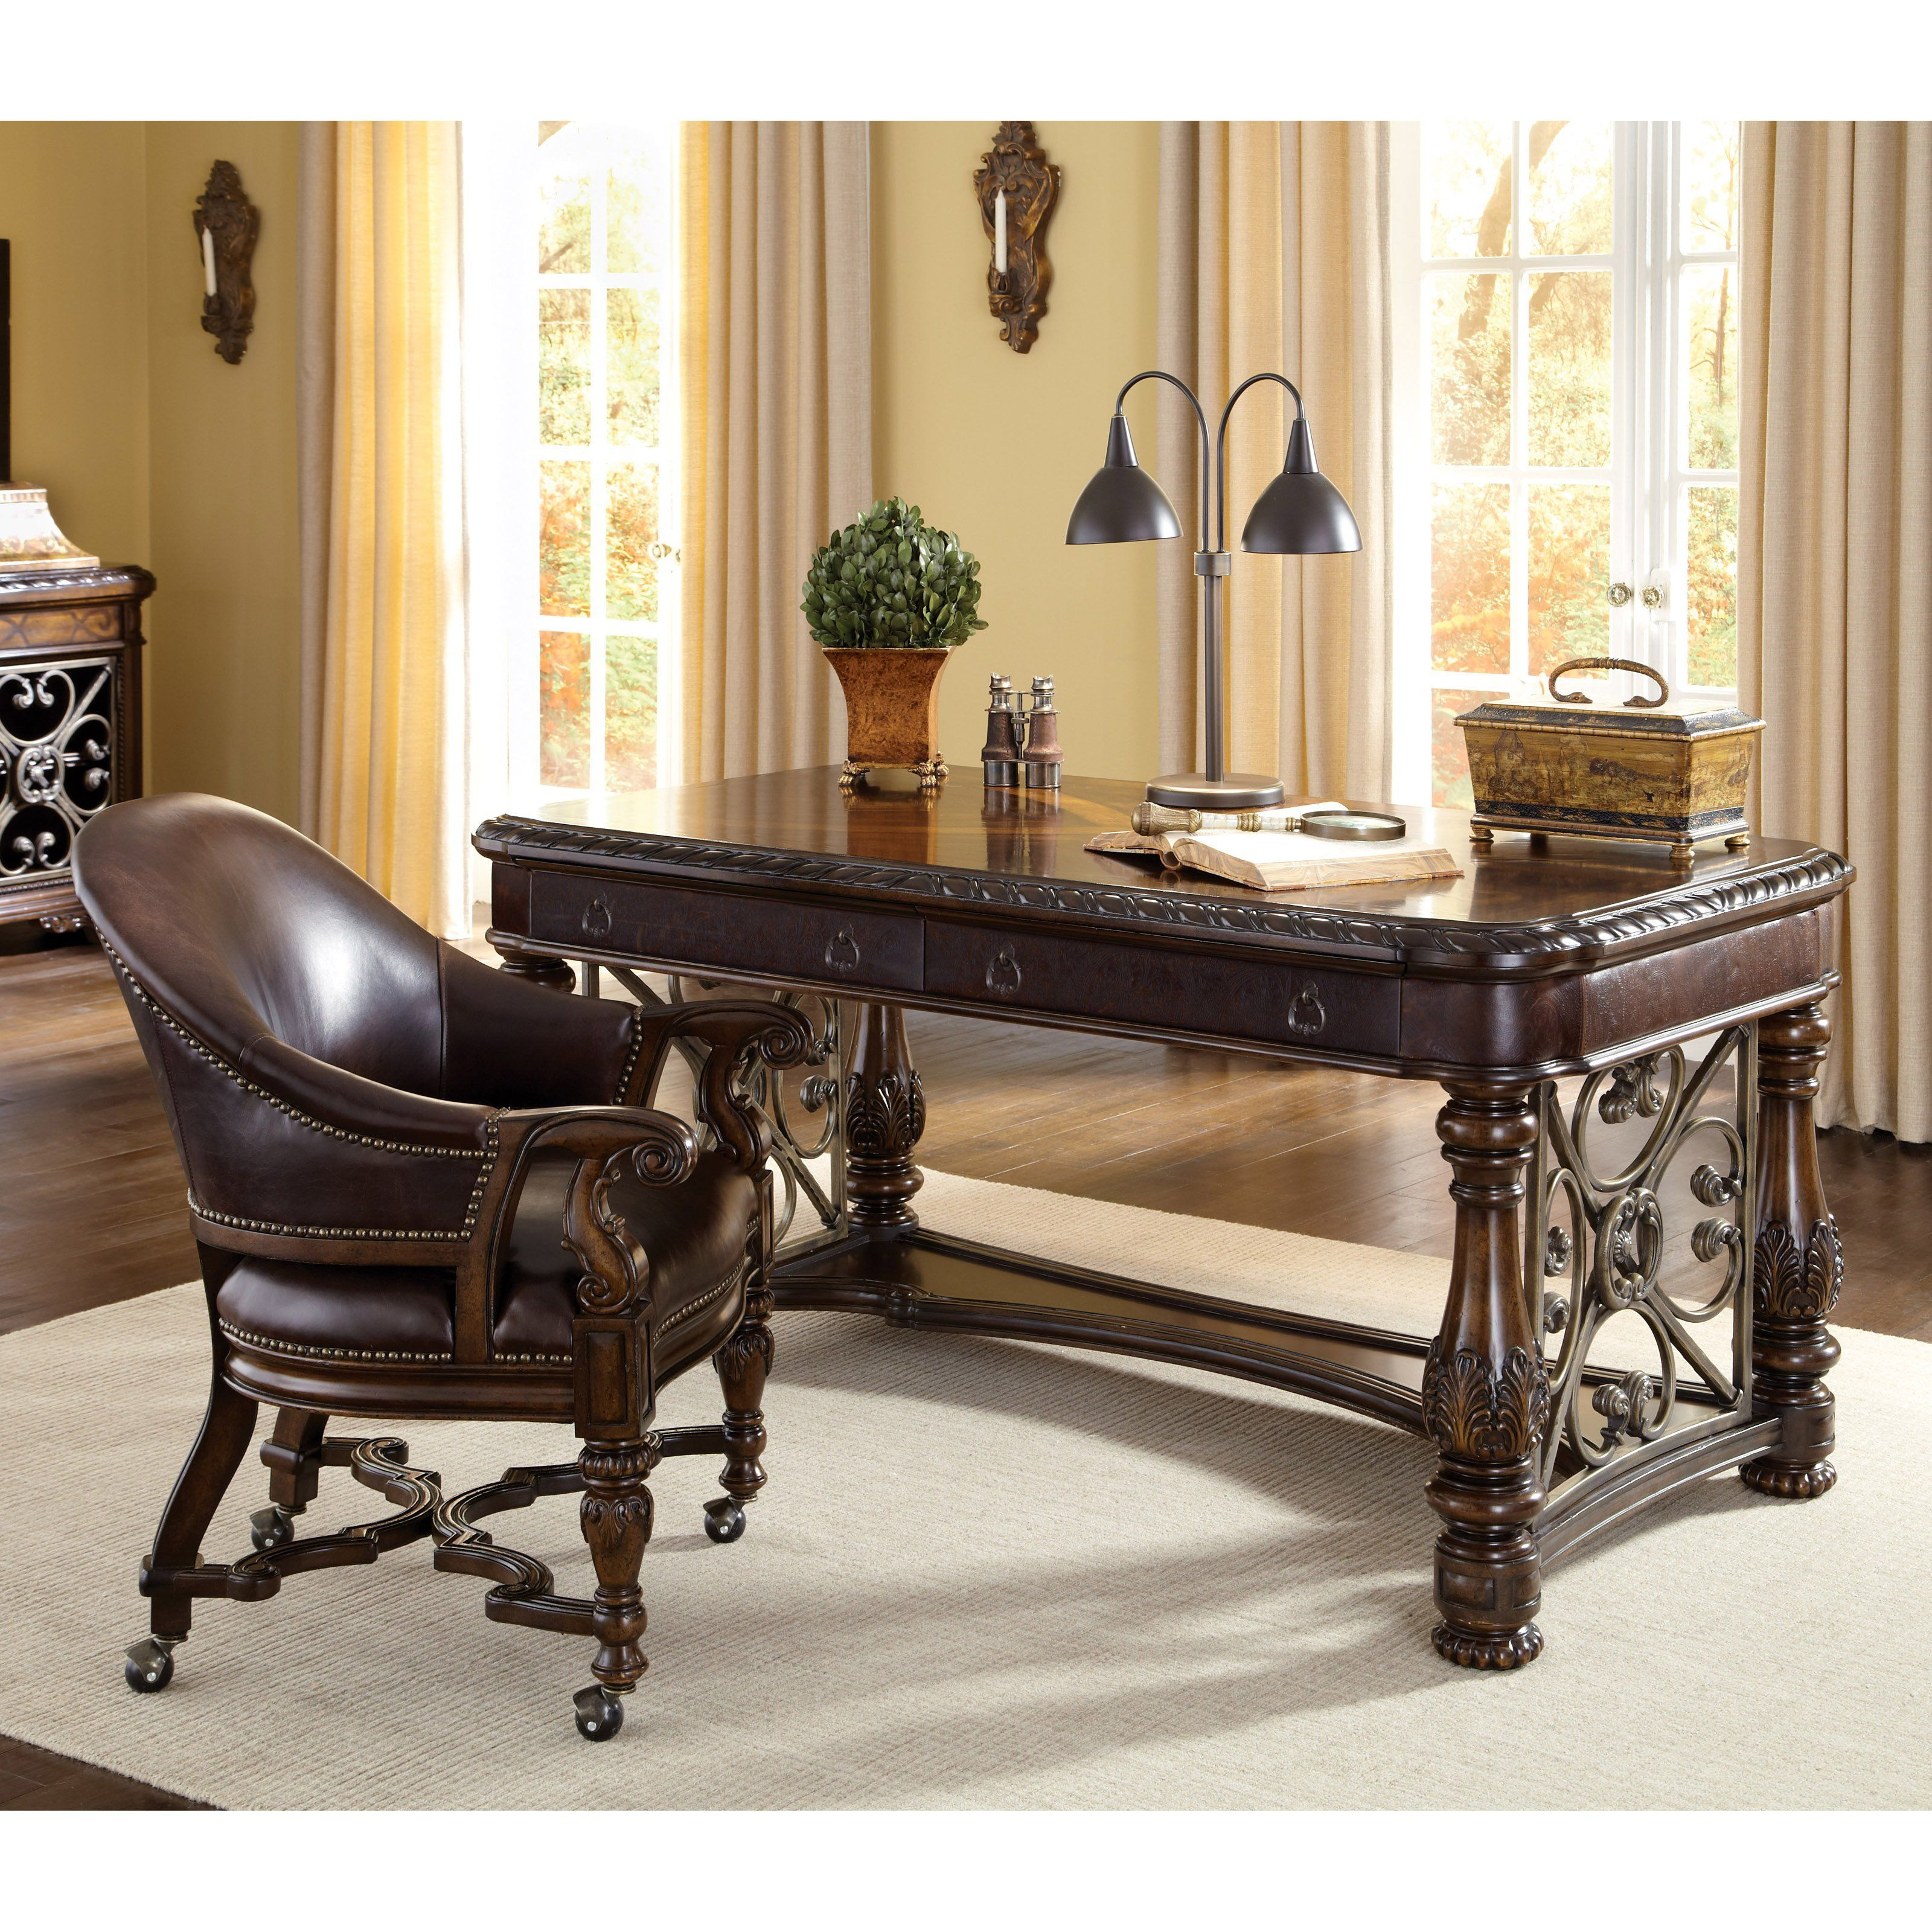 Old world writing desk desk design ideas like the desk not chair into leather a r t furniture gumiabroncs Choice Image